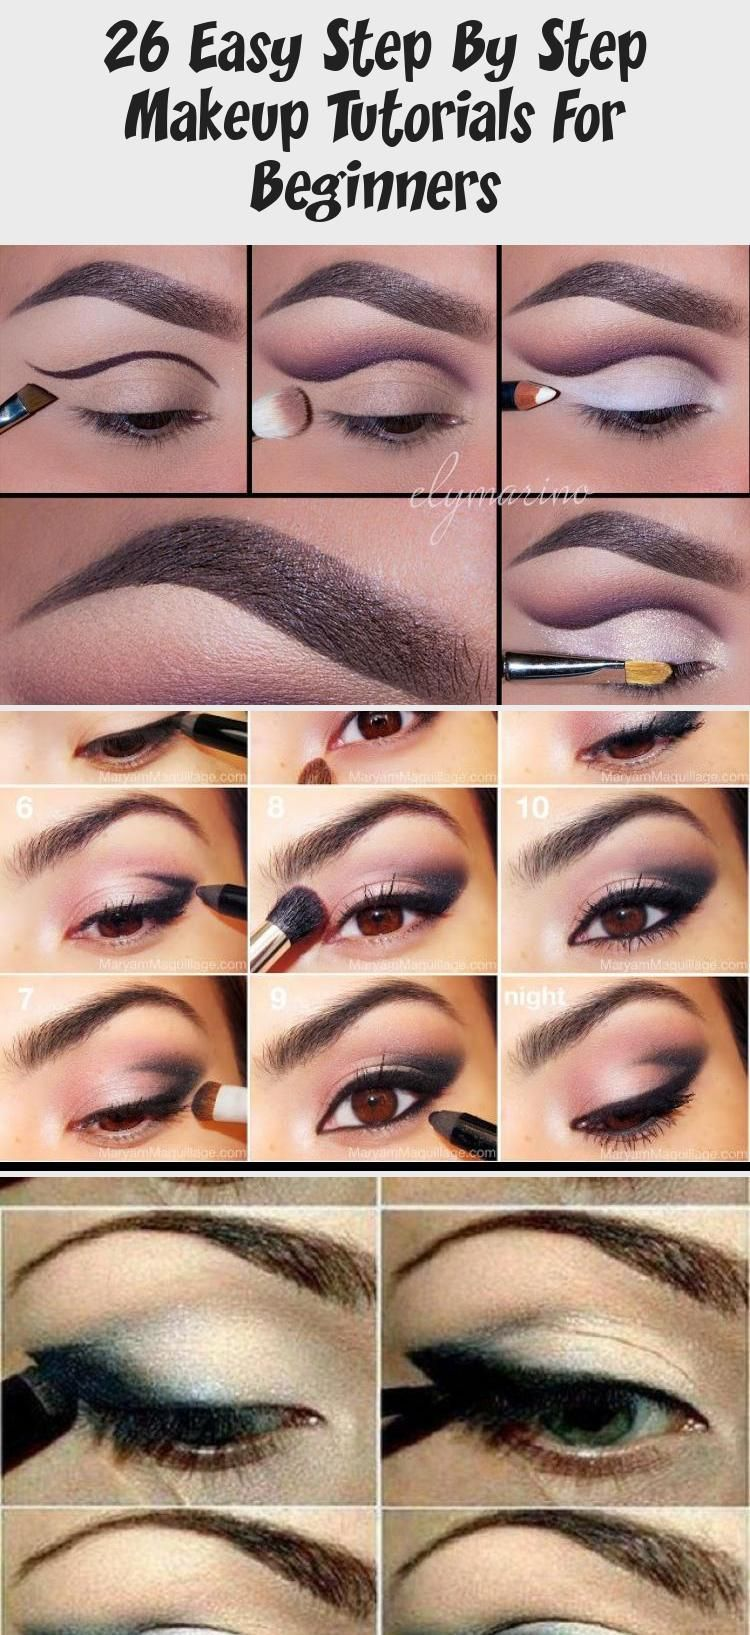 26 Easy Step By Step Makeup Tutorials For Beginners Best Makeup Beginners Easy Makeu In 2020 Easy Eye Makeup Tutorial Makeup Tutorial For Beginners Makeup Tutorial